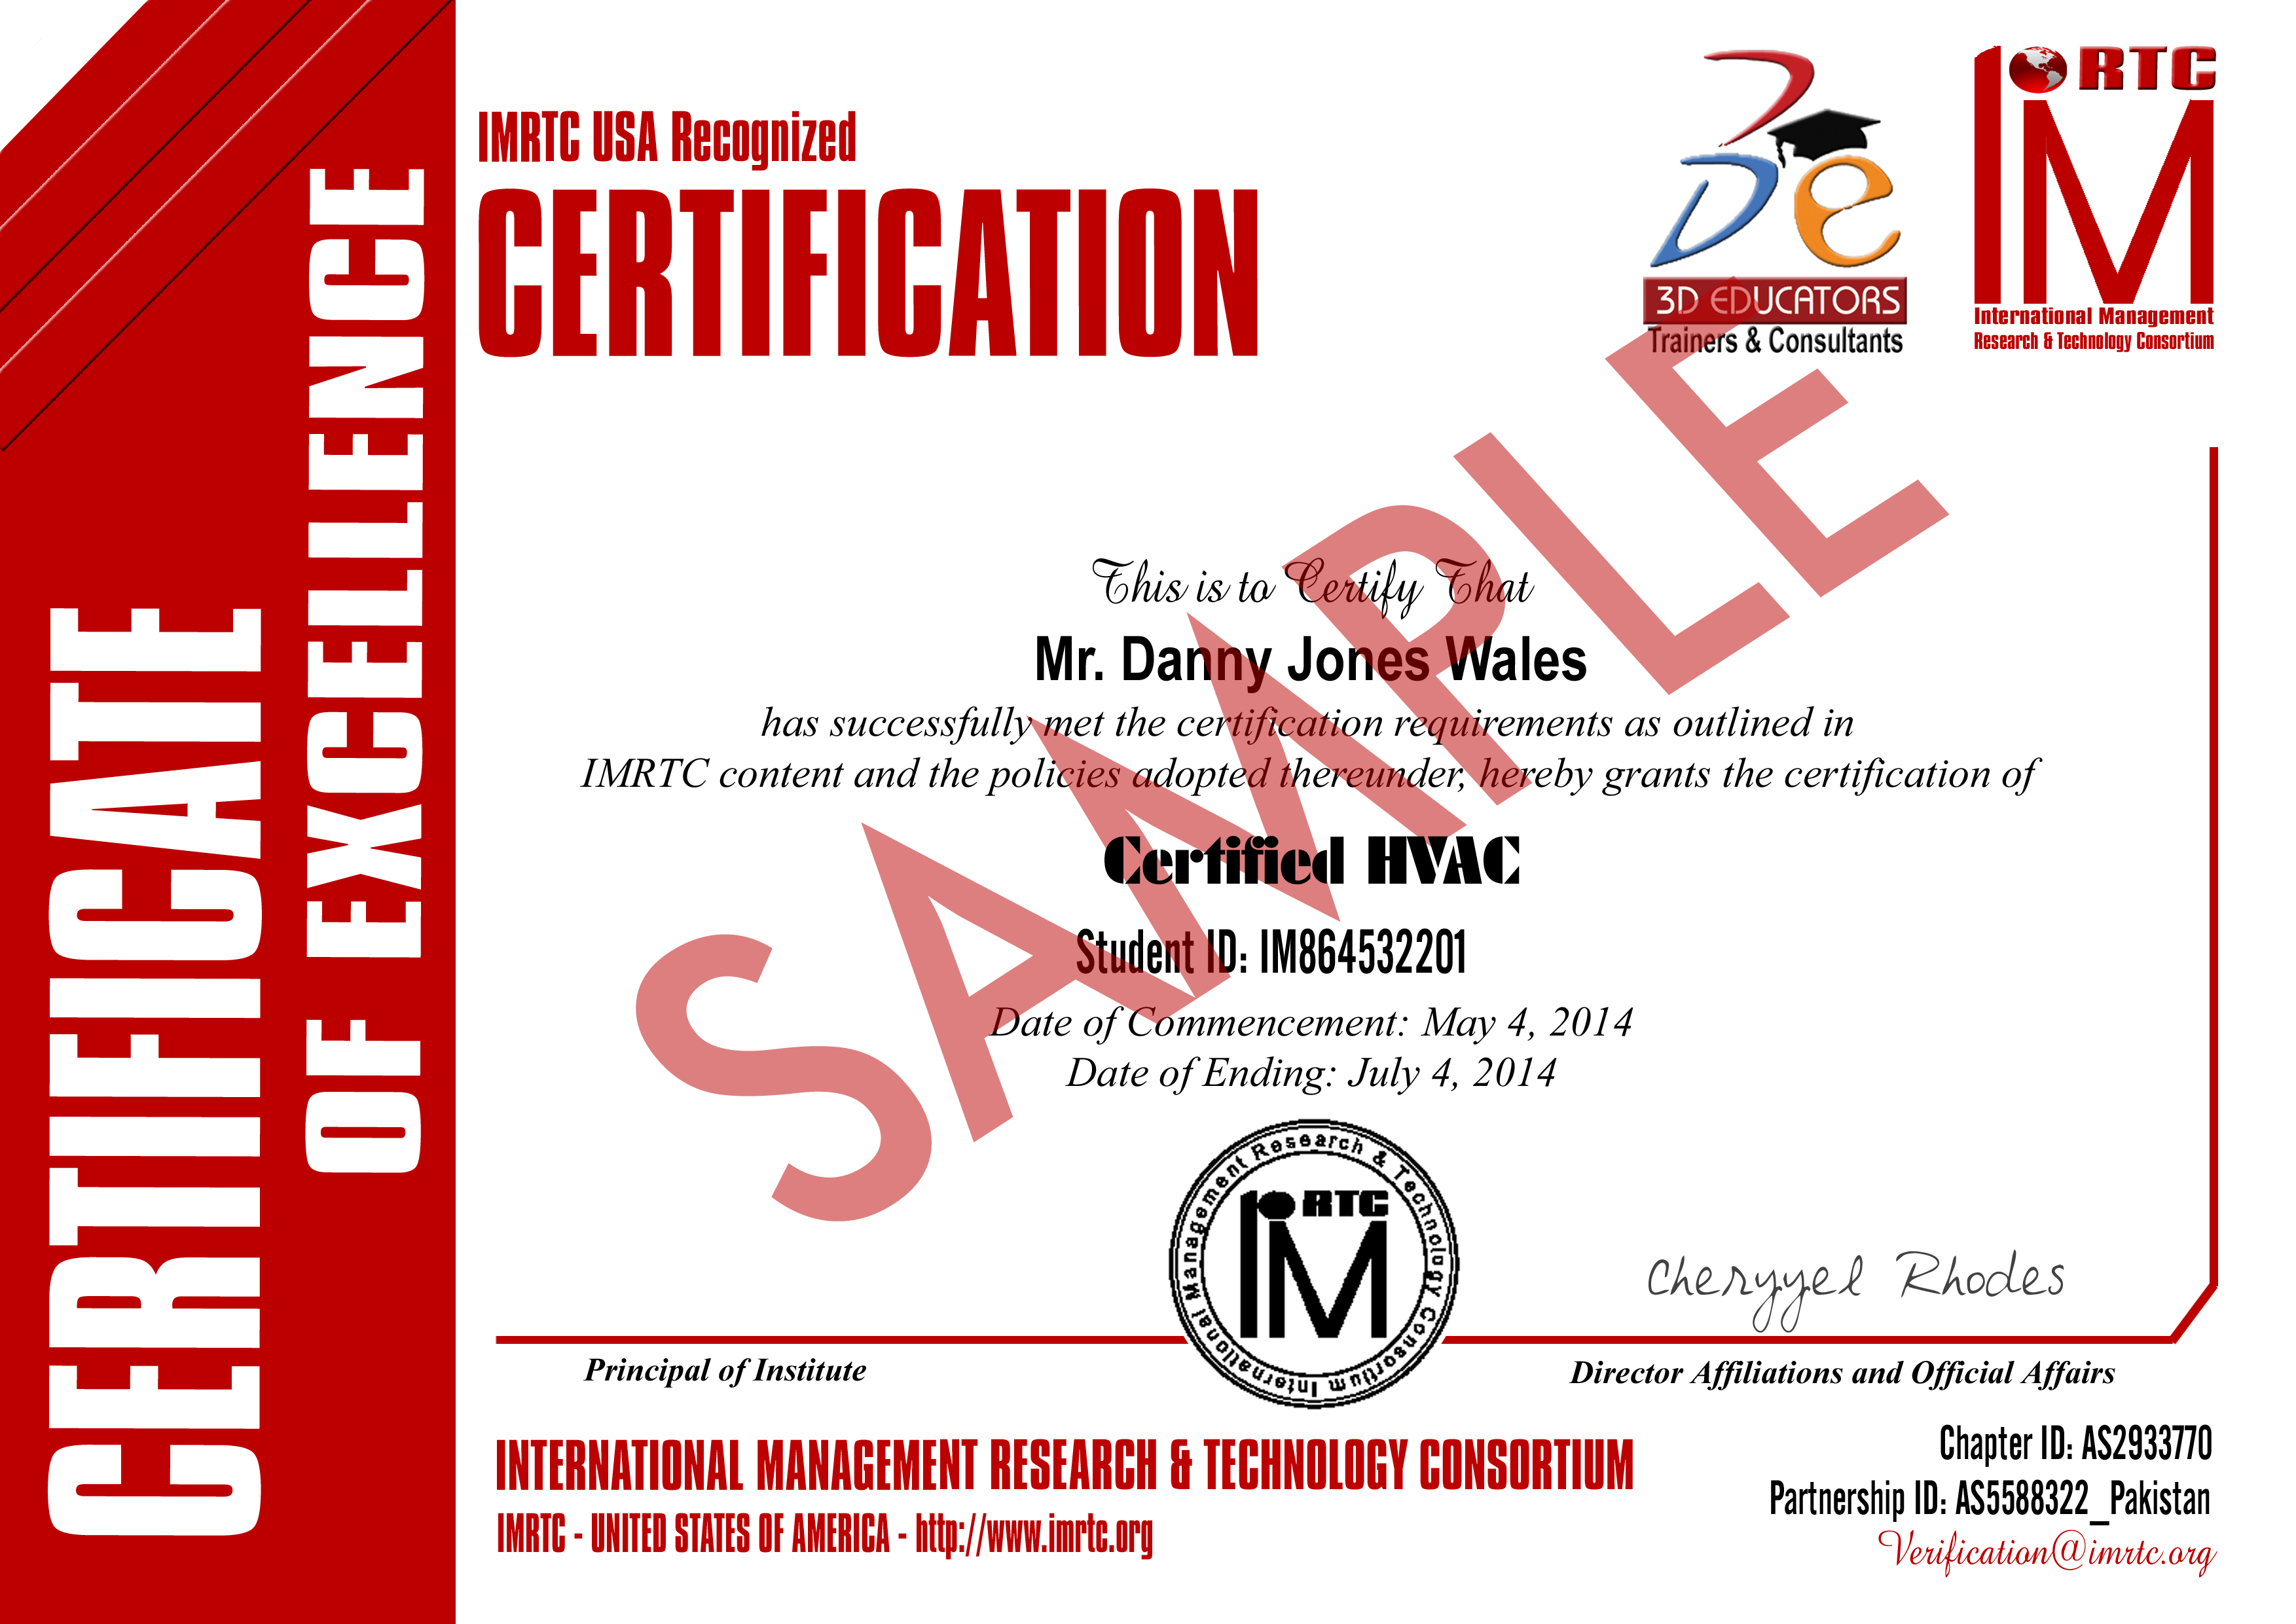 Certified Hvac And Refregeration Vocational Training Course In